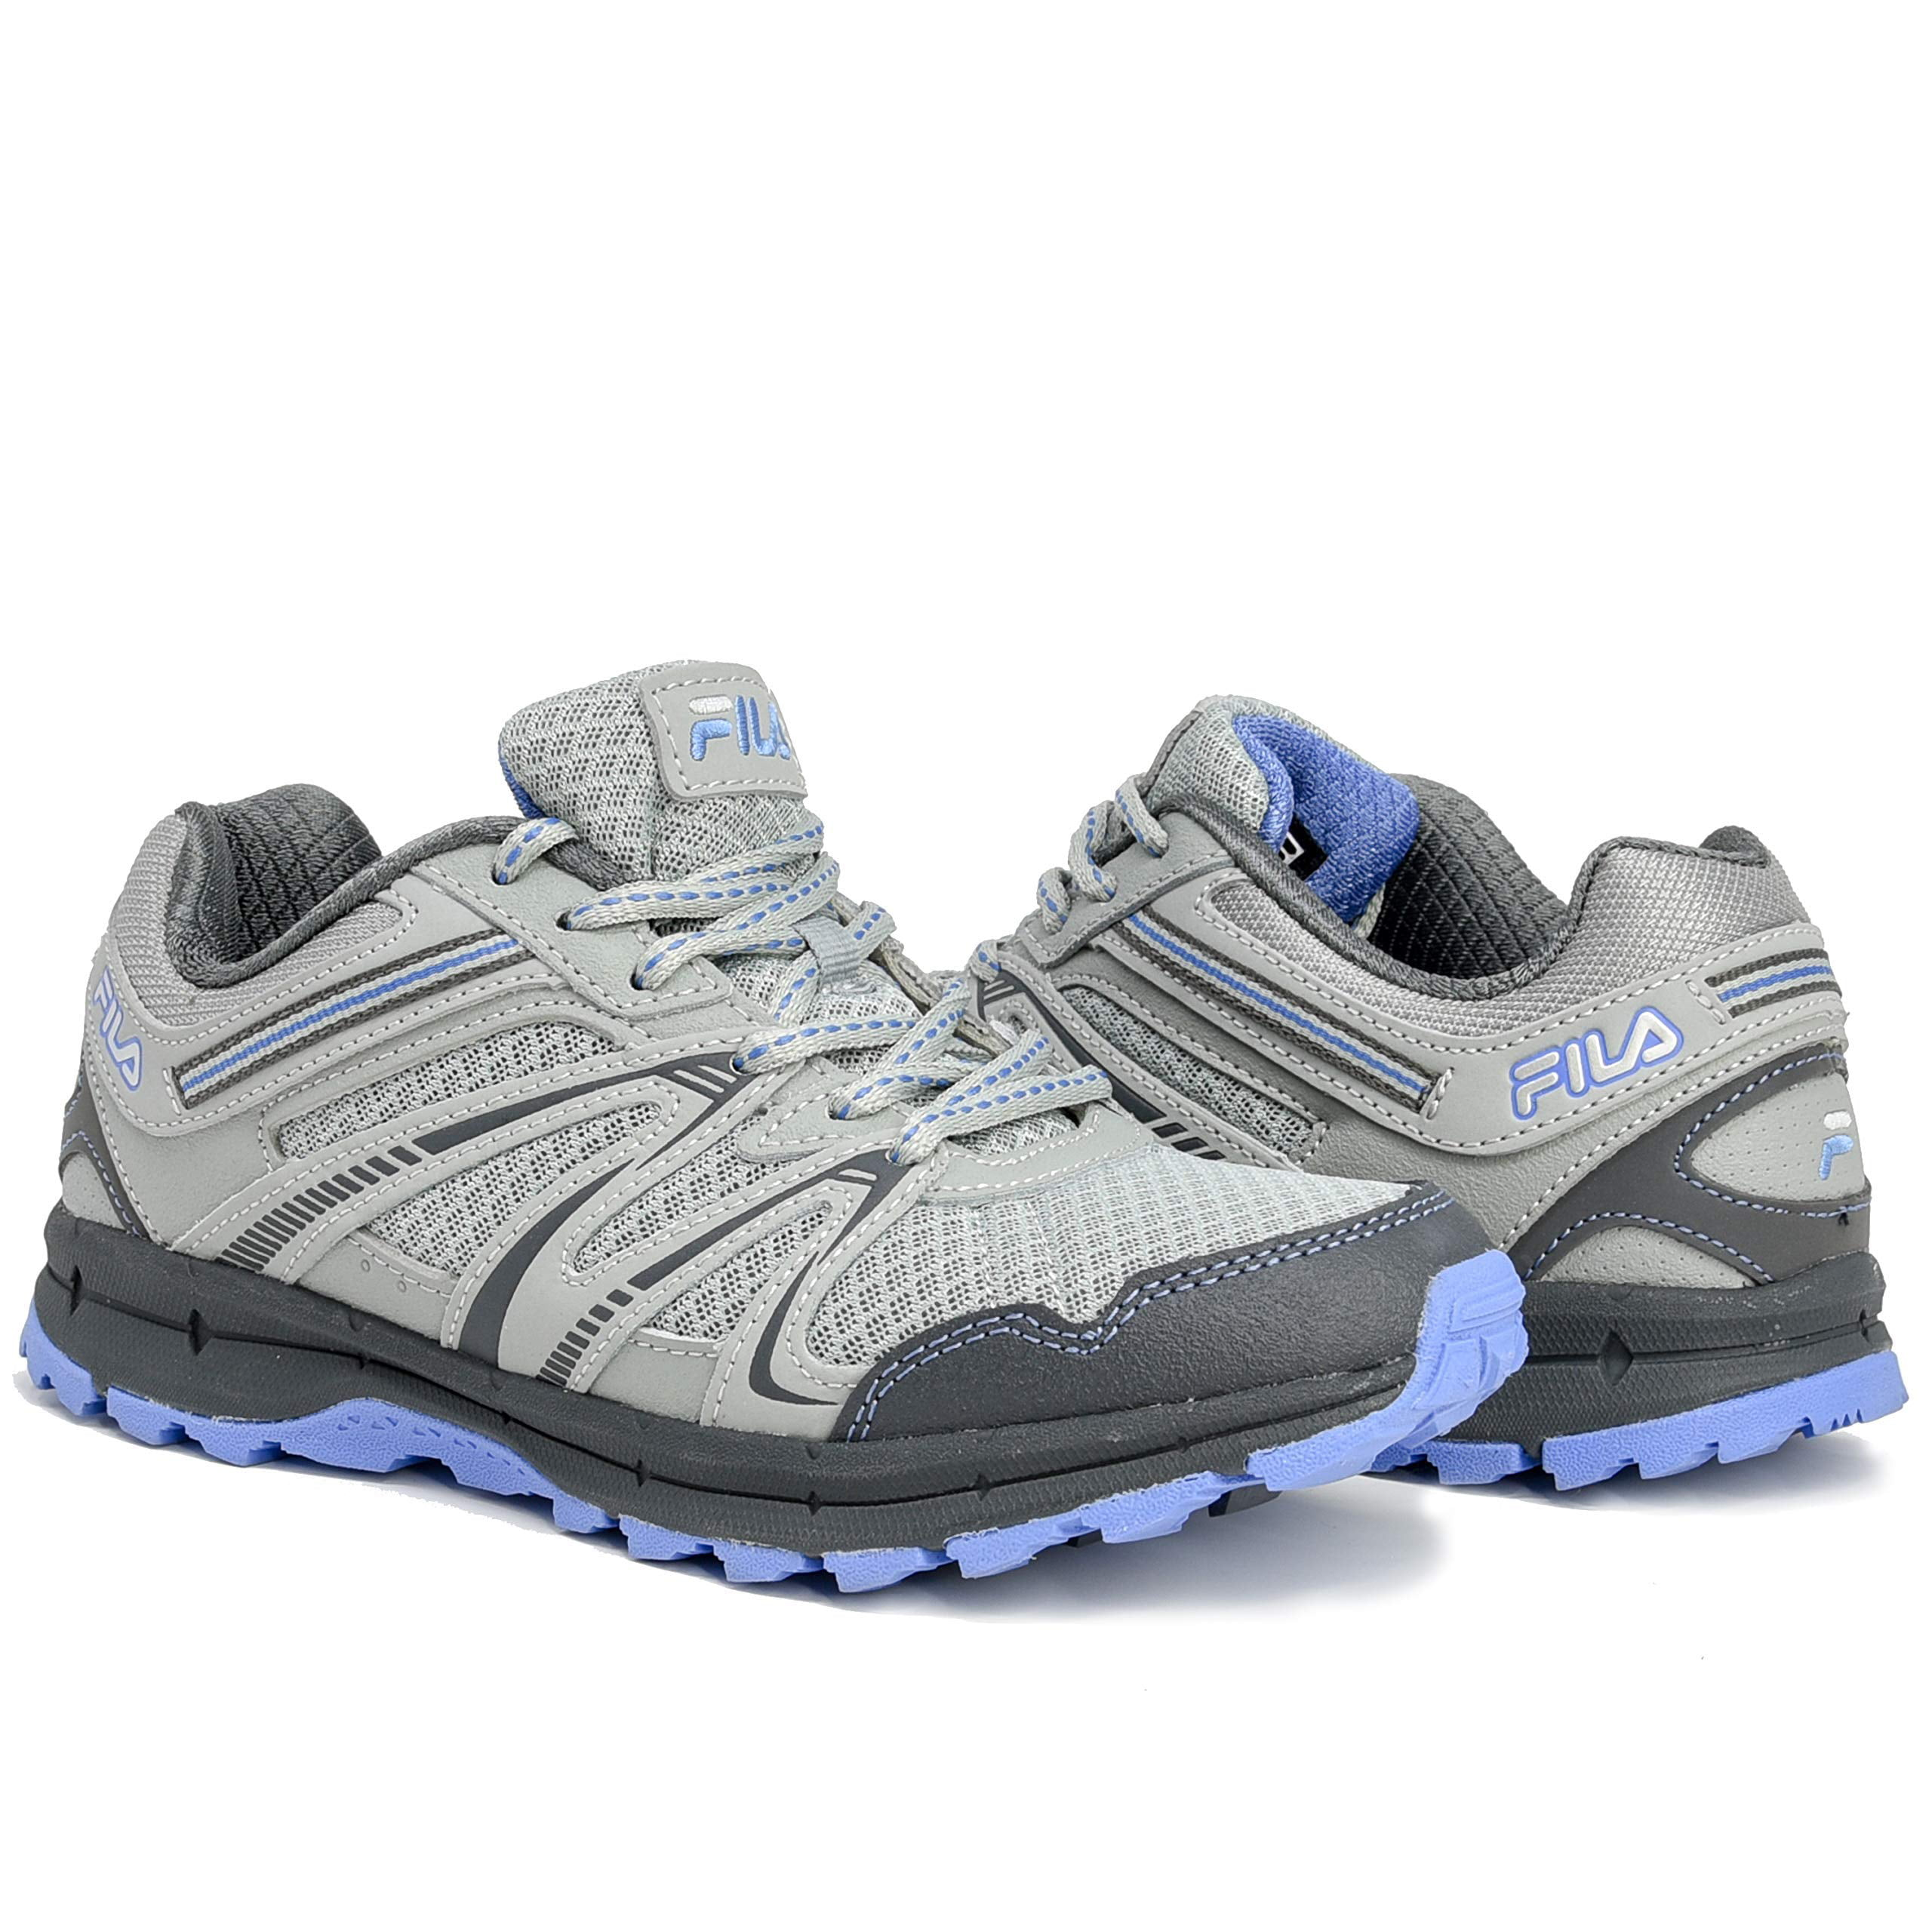 Trail Running Hiking Shoes (7.5